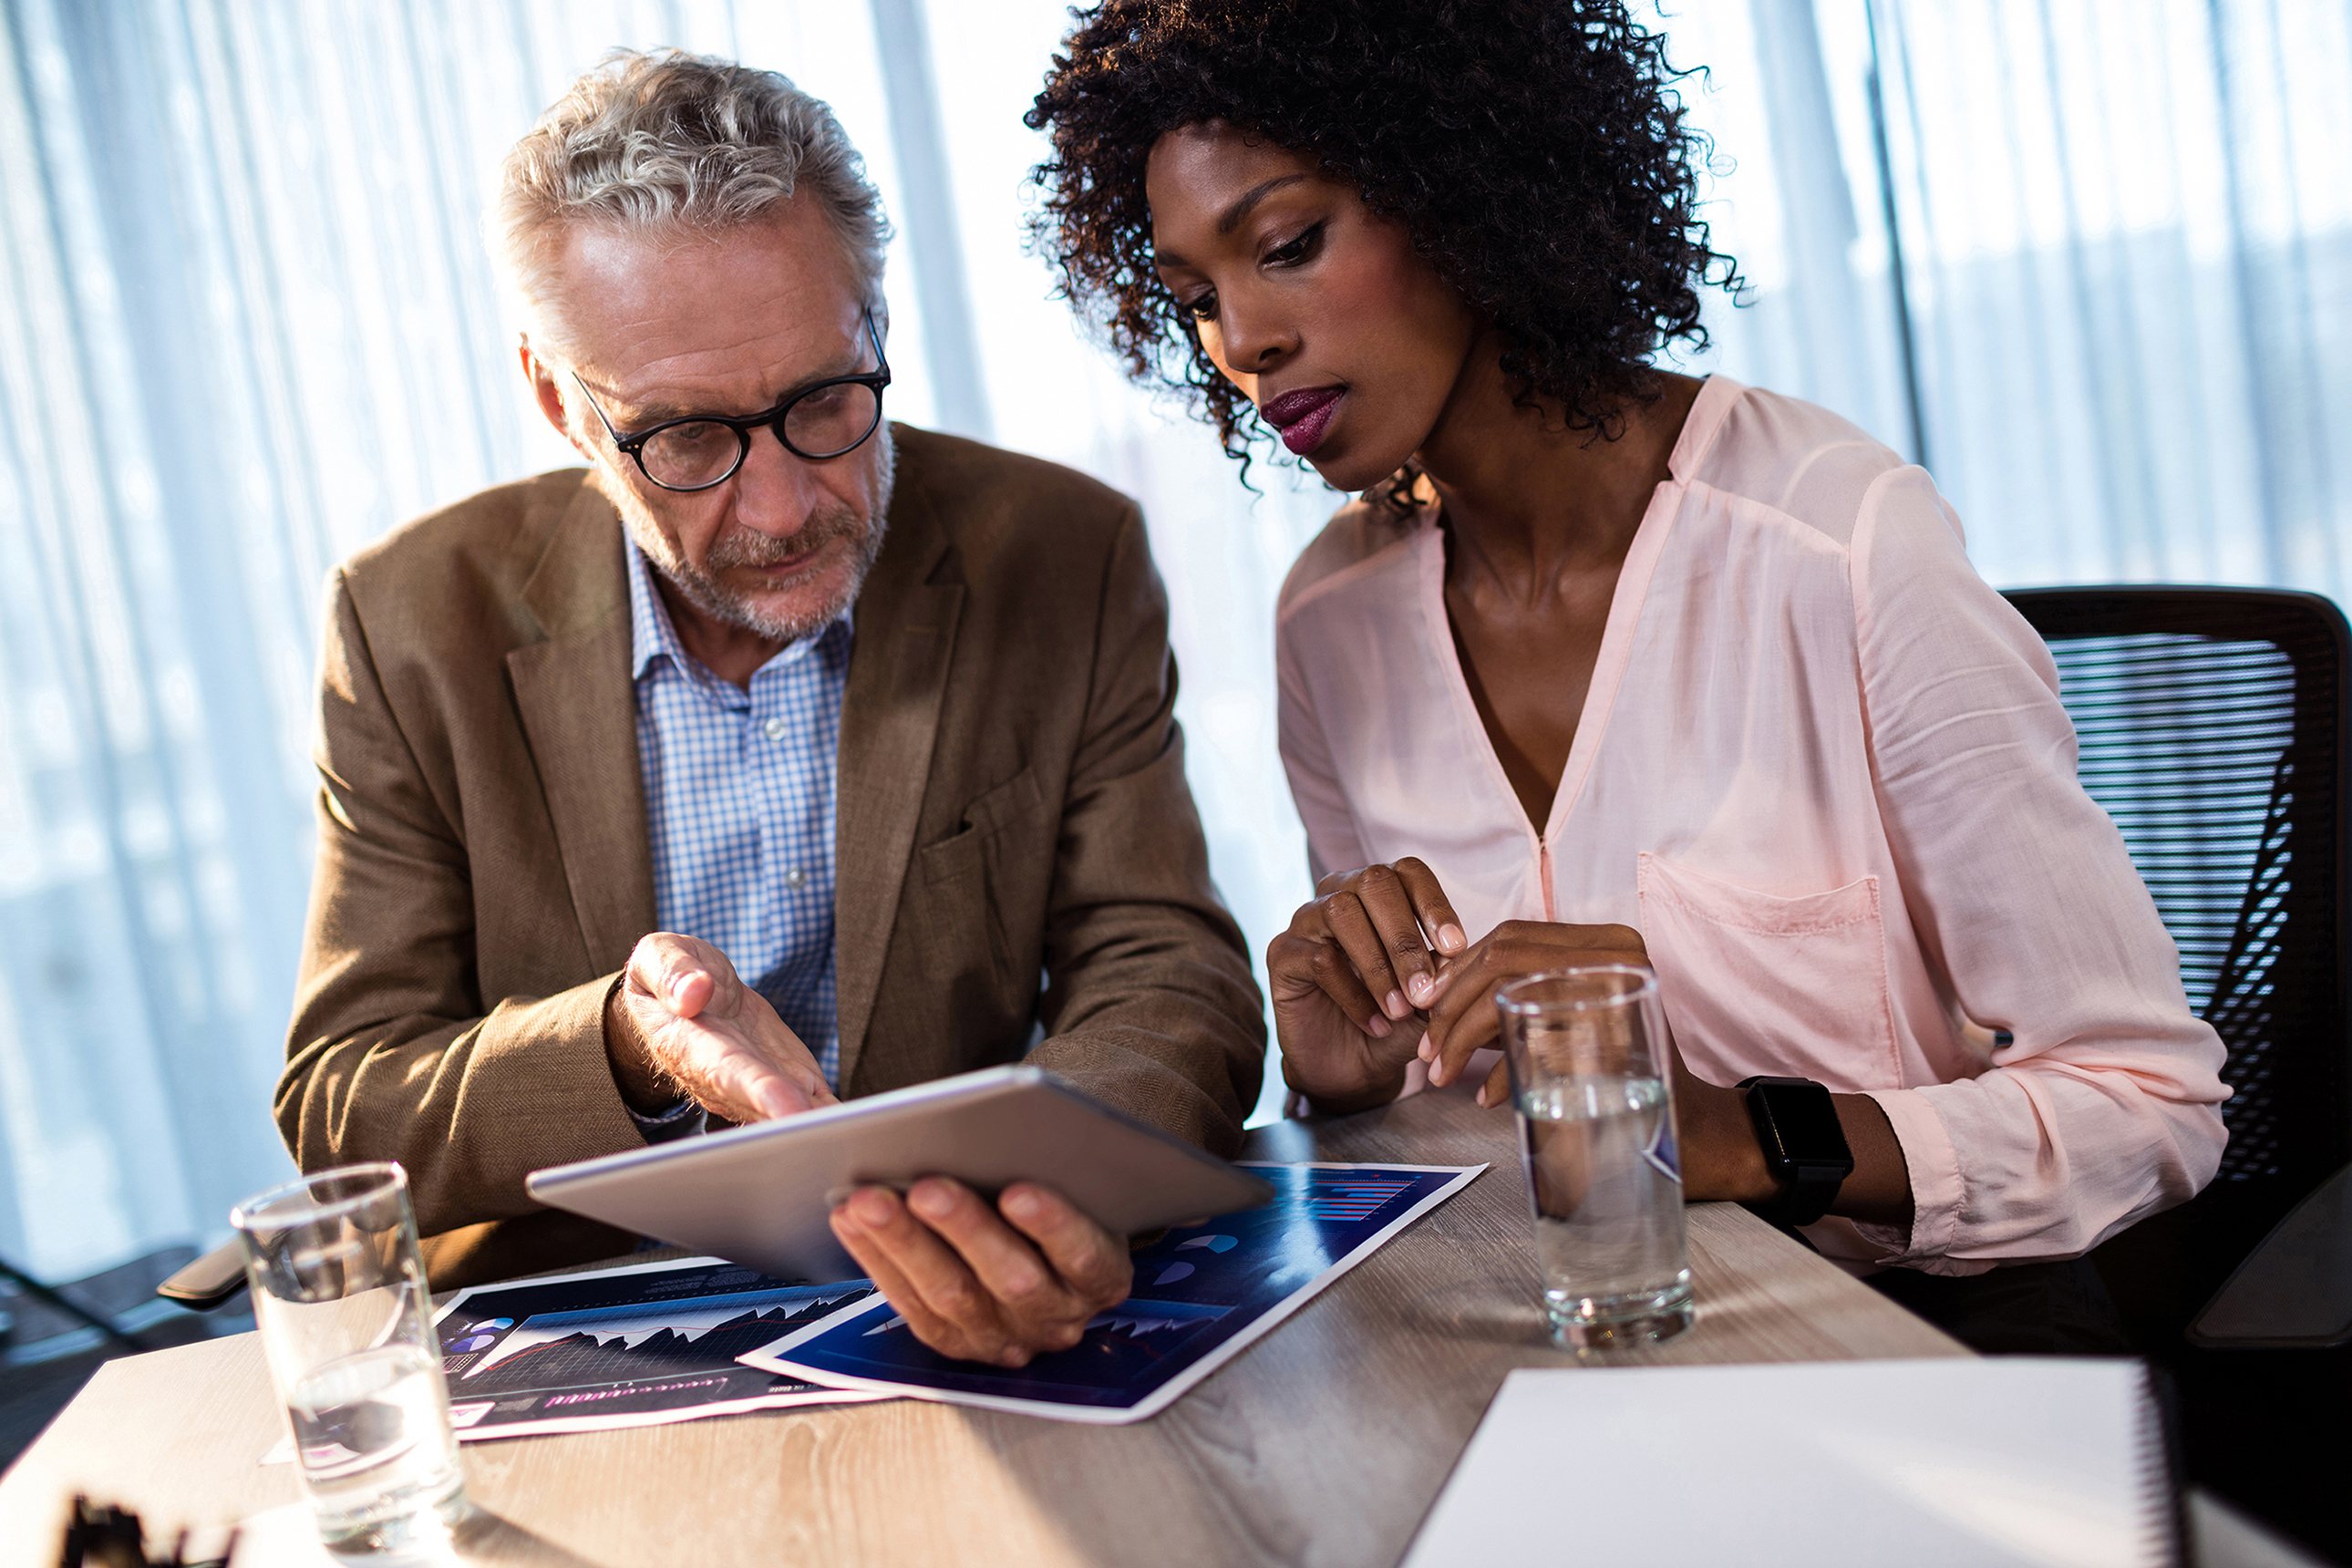 man points at tablet as woman next to him looks